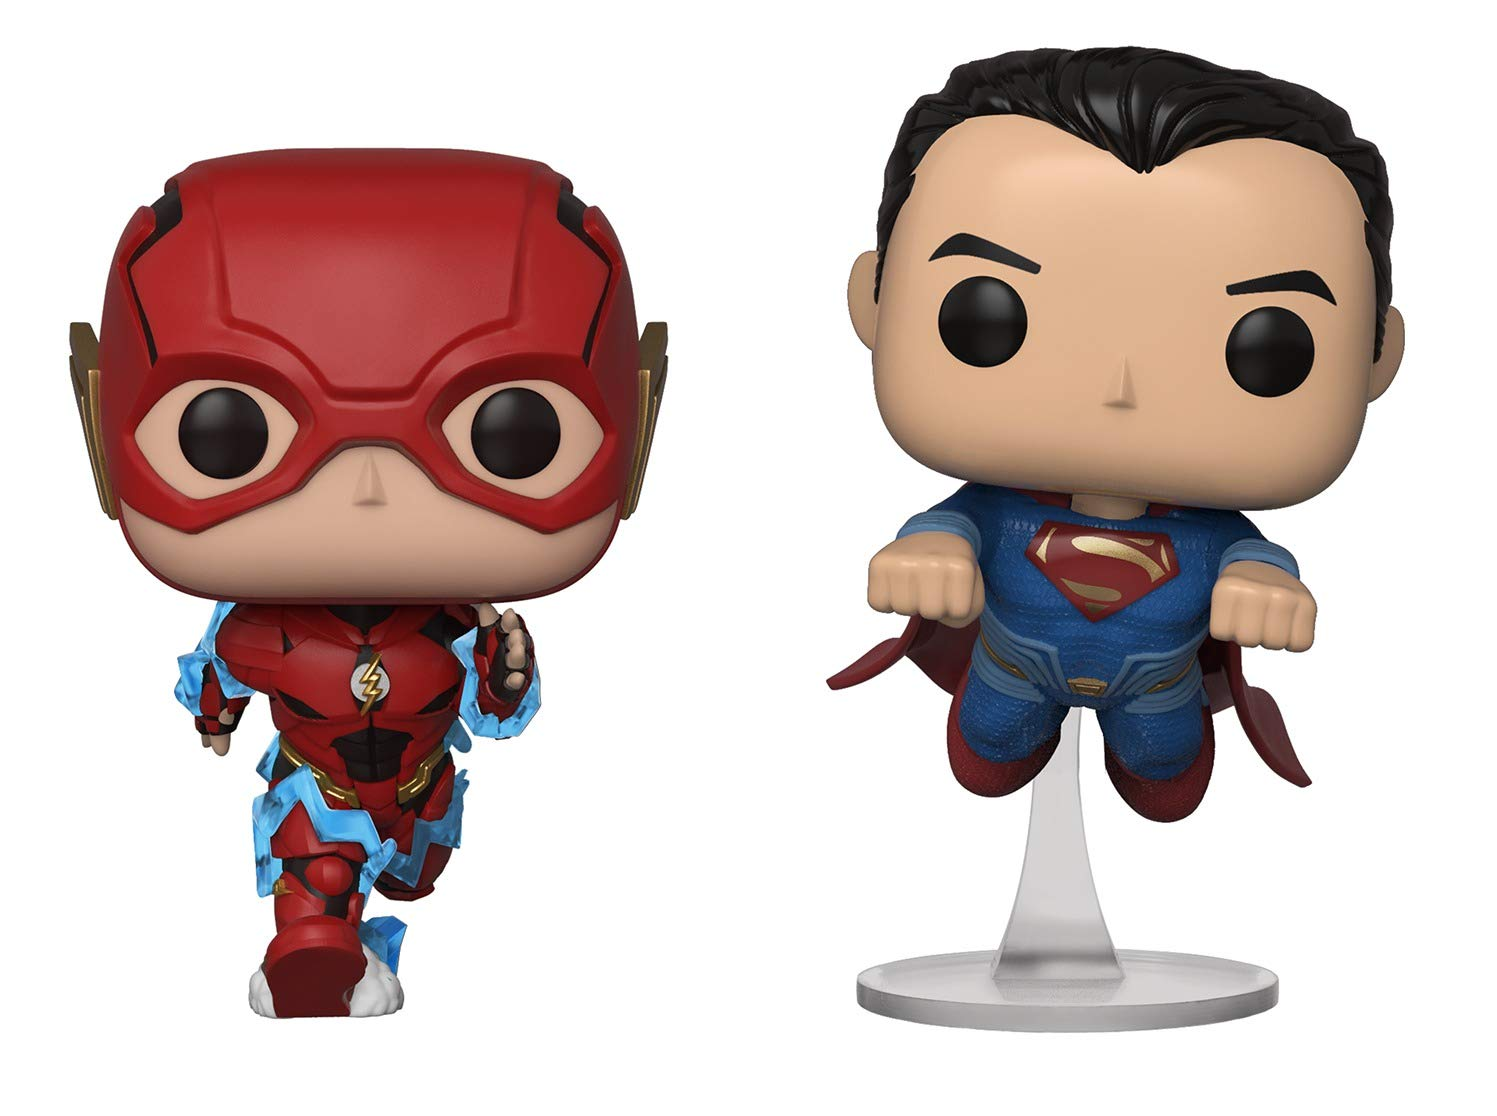 Funko - Figurine DC Justice League - 2-Pack Flash & Superman Exclu Pop 10cm - 0889698344210: Amazon.es: Juguetes y juegos